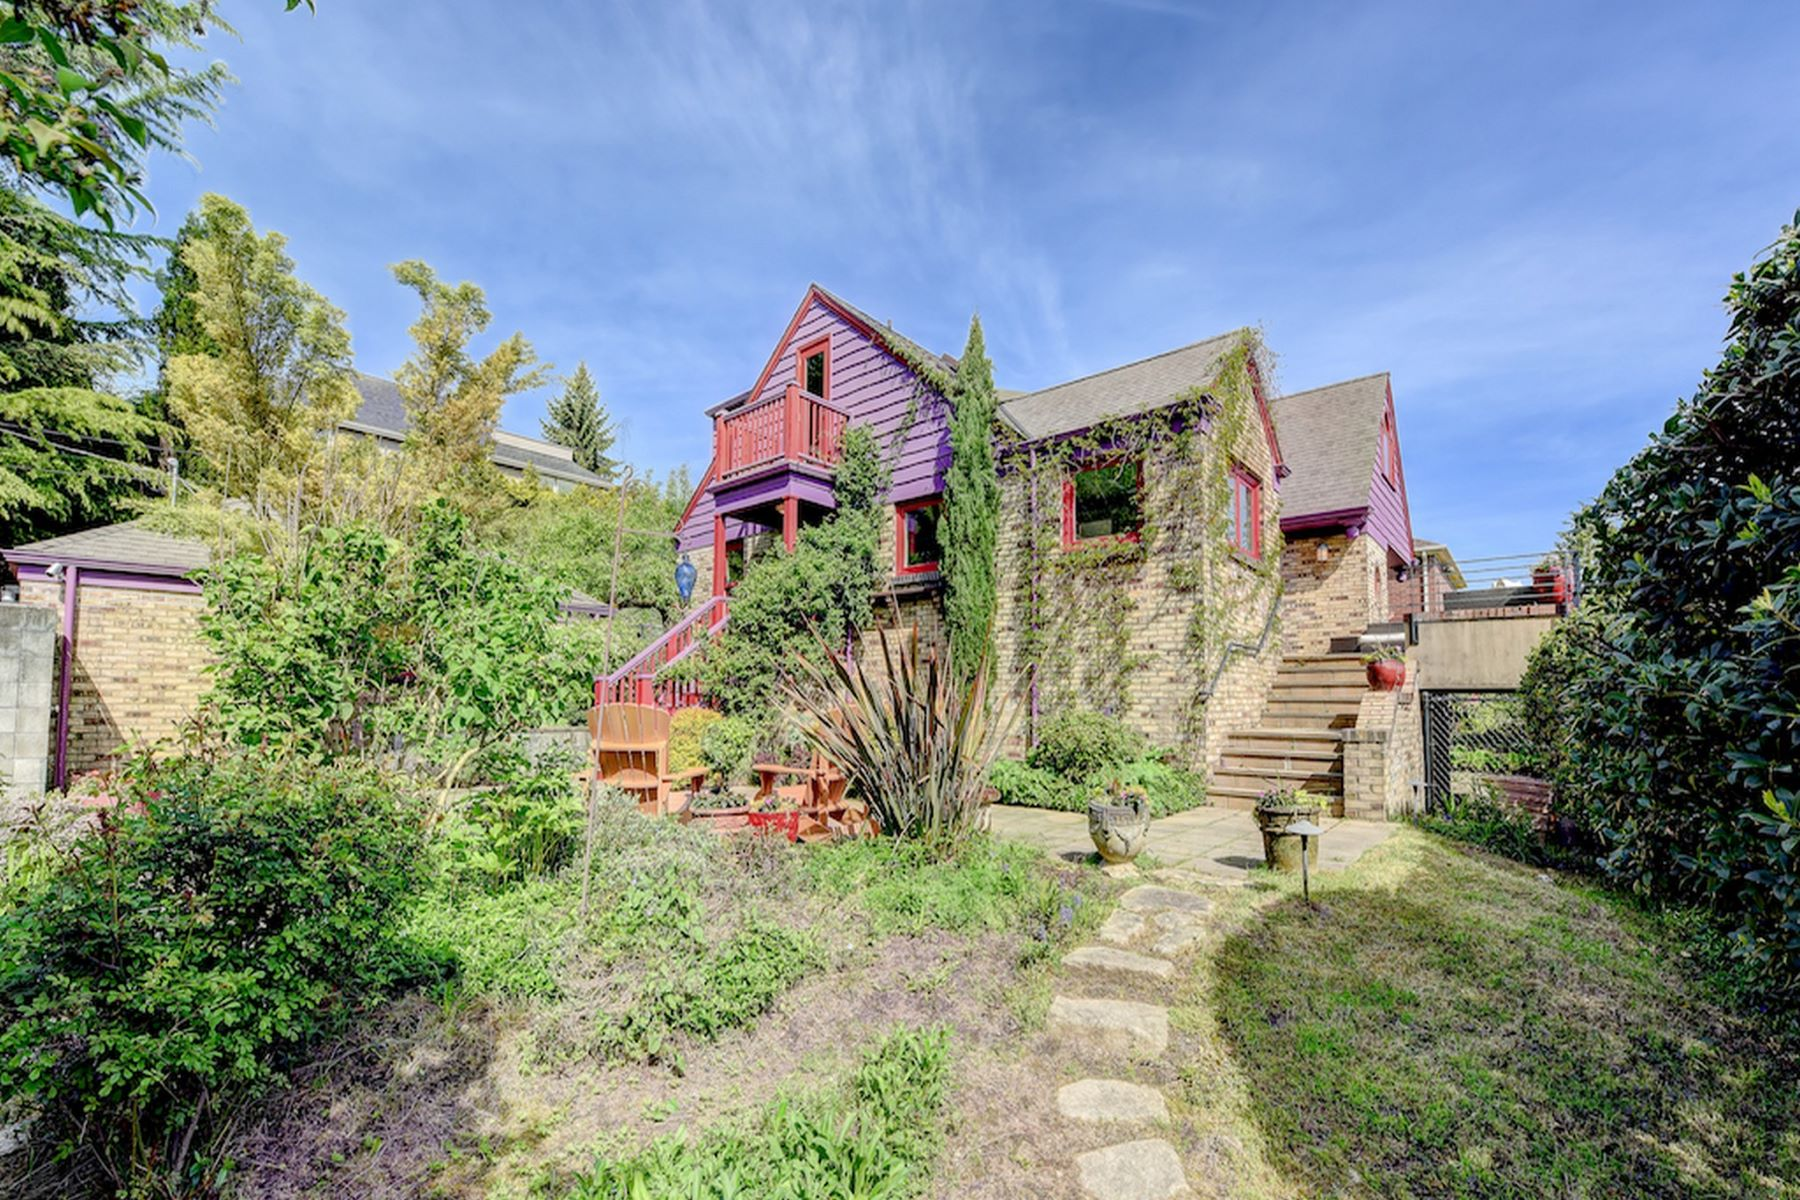 Single Family Home for Sale at Renovated Woodland Park Craftsman 5907 Linden Ave N Seattle, Washington 98103 United States